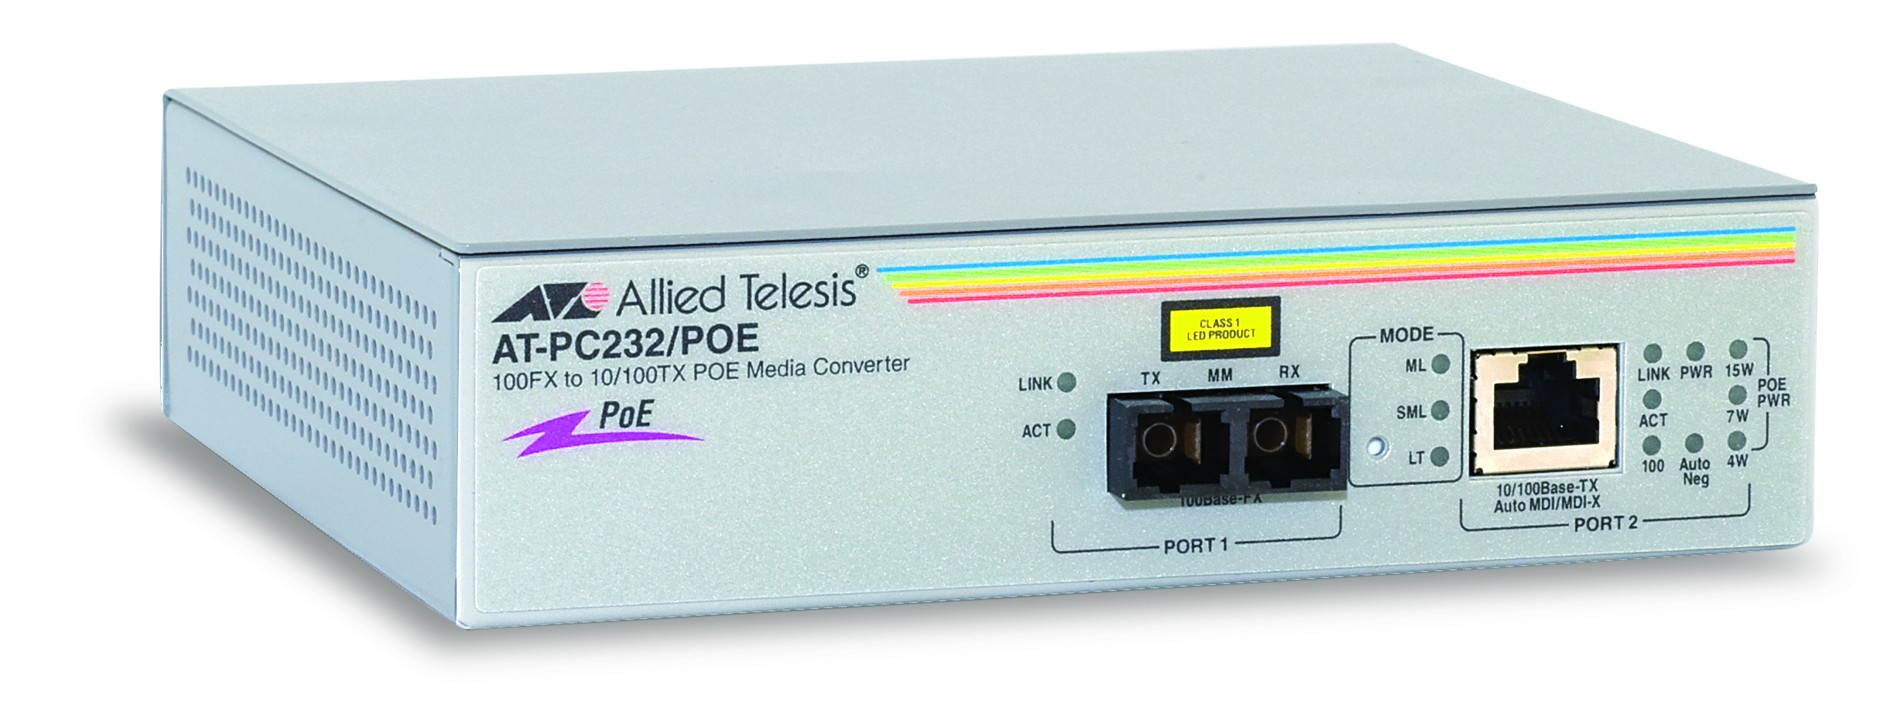 Allied Telesis AT-PC232/POE 100Mb PoE Multi Mode Converter